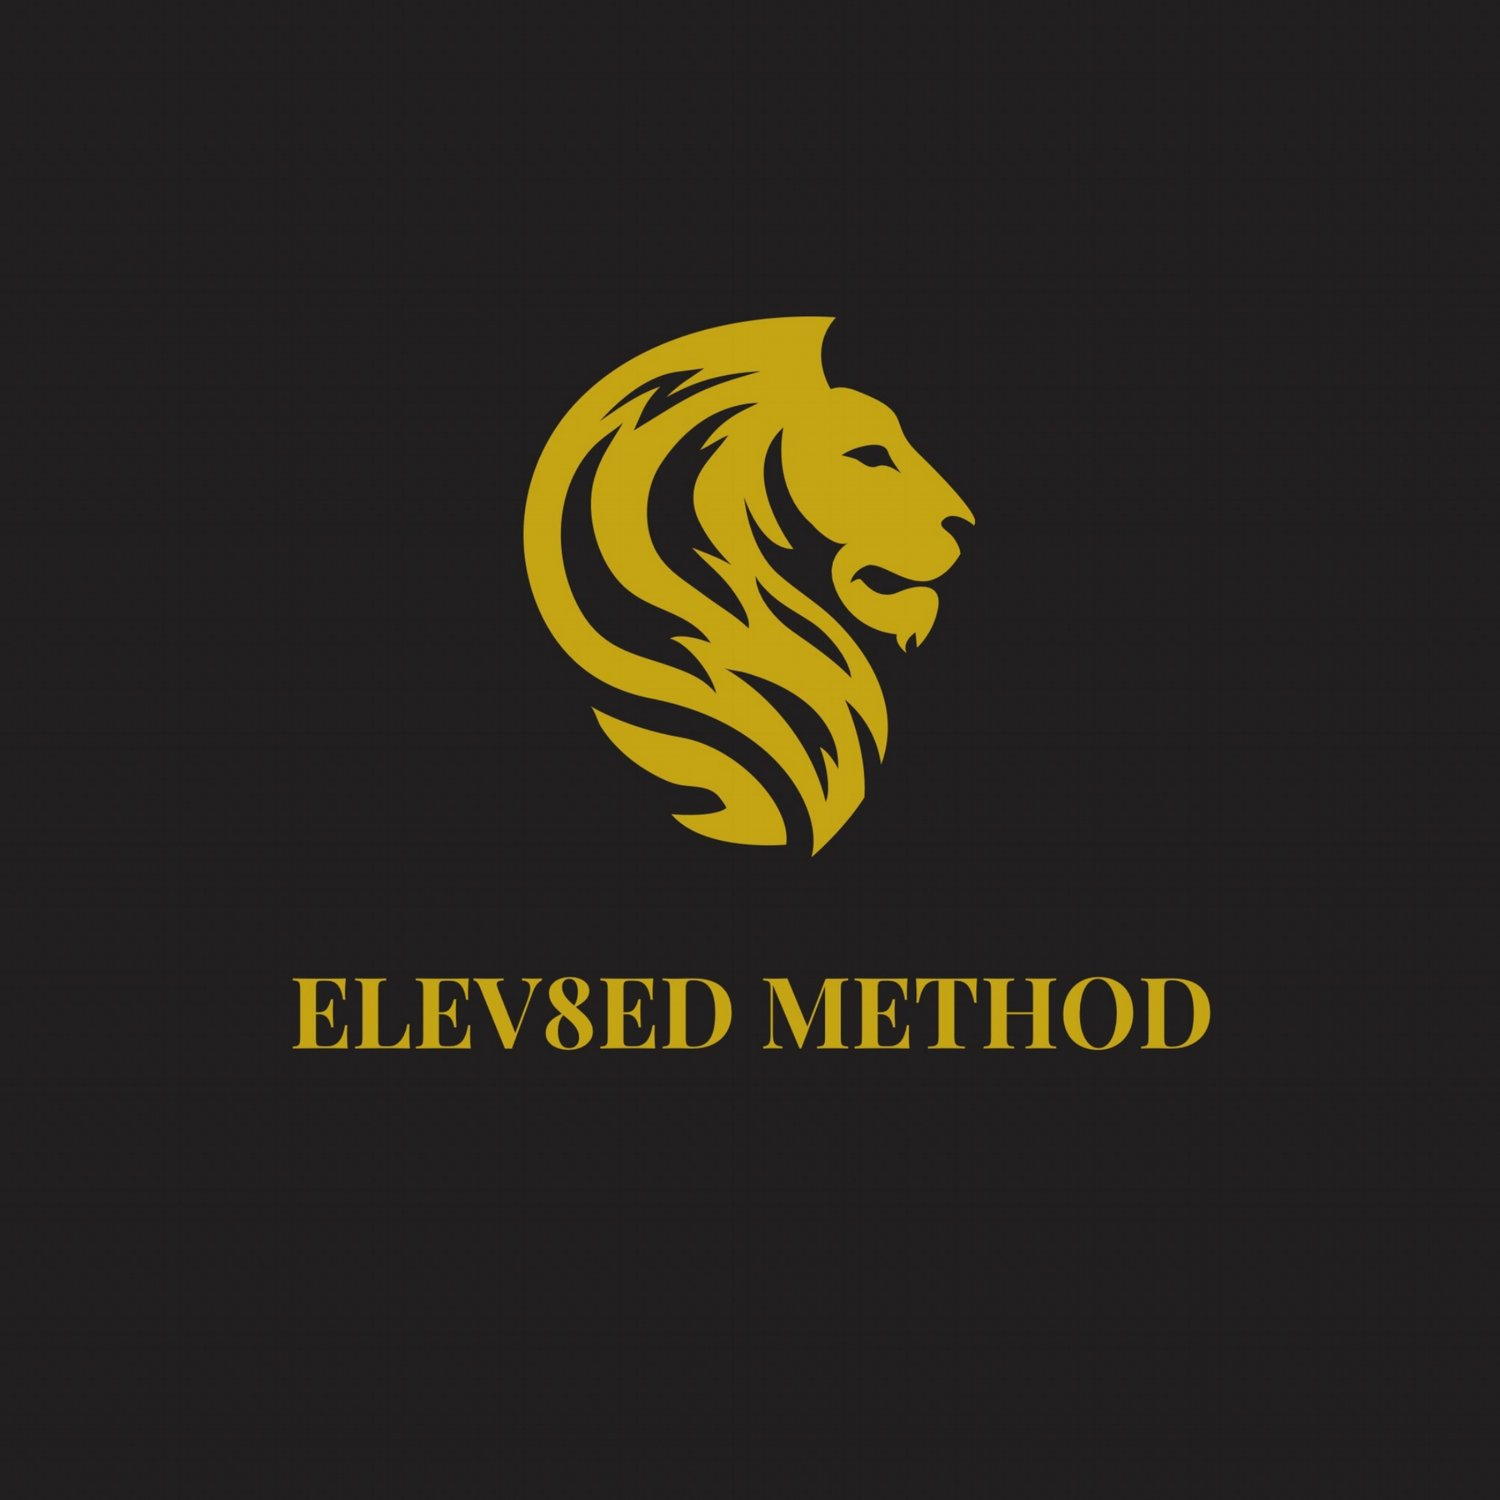 The Elev8ed Method